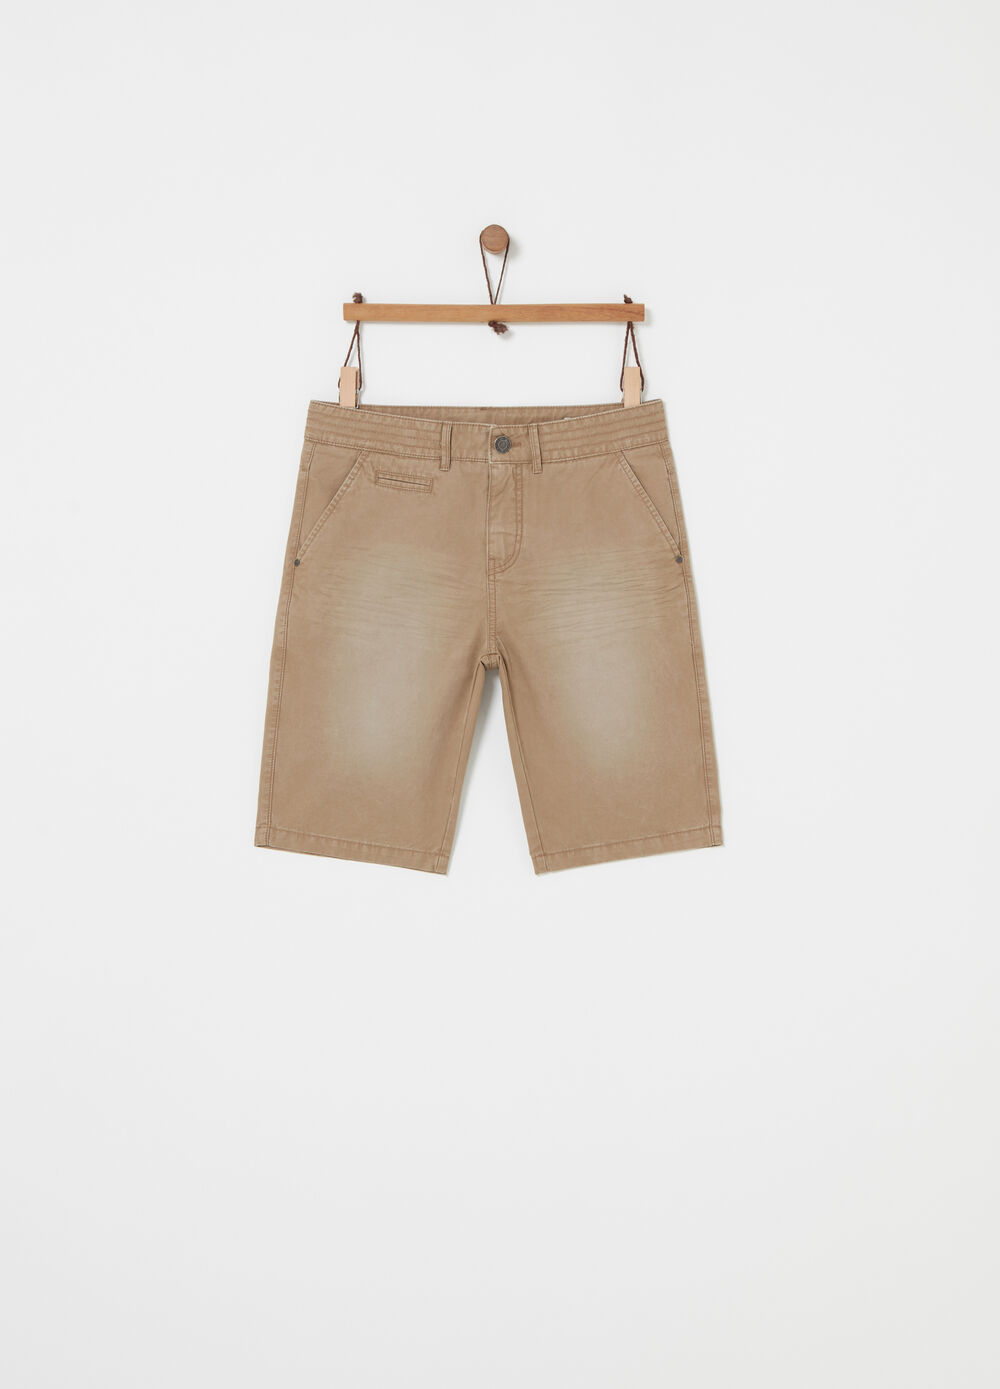 Short chinos in 100% cotton twill